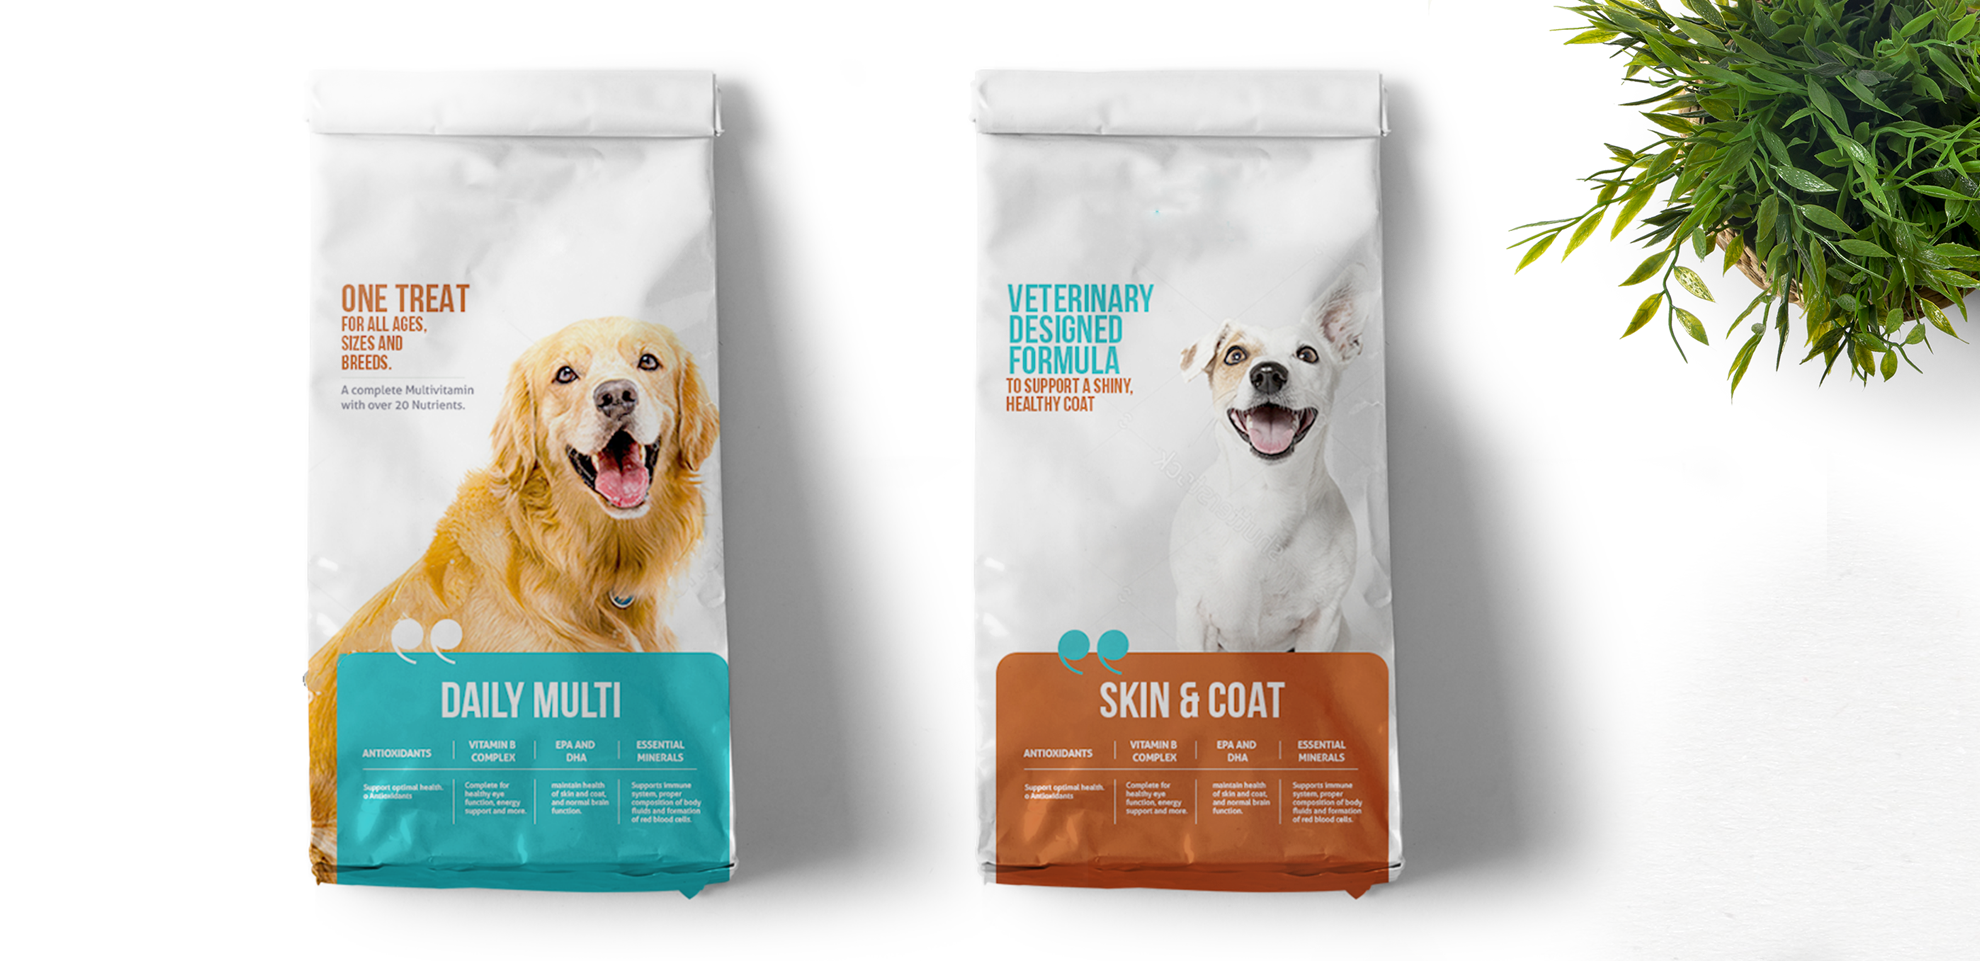 Verve_Concepts_Pet_Food_Branding_Final(www.verveconcepts.com)